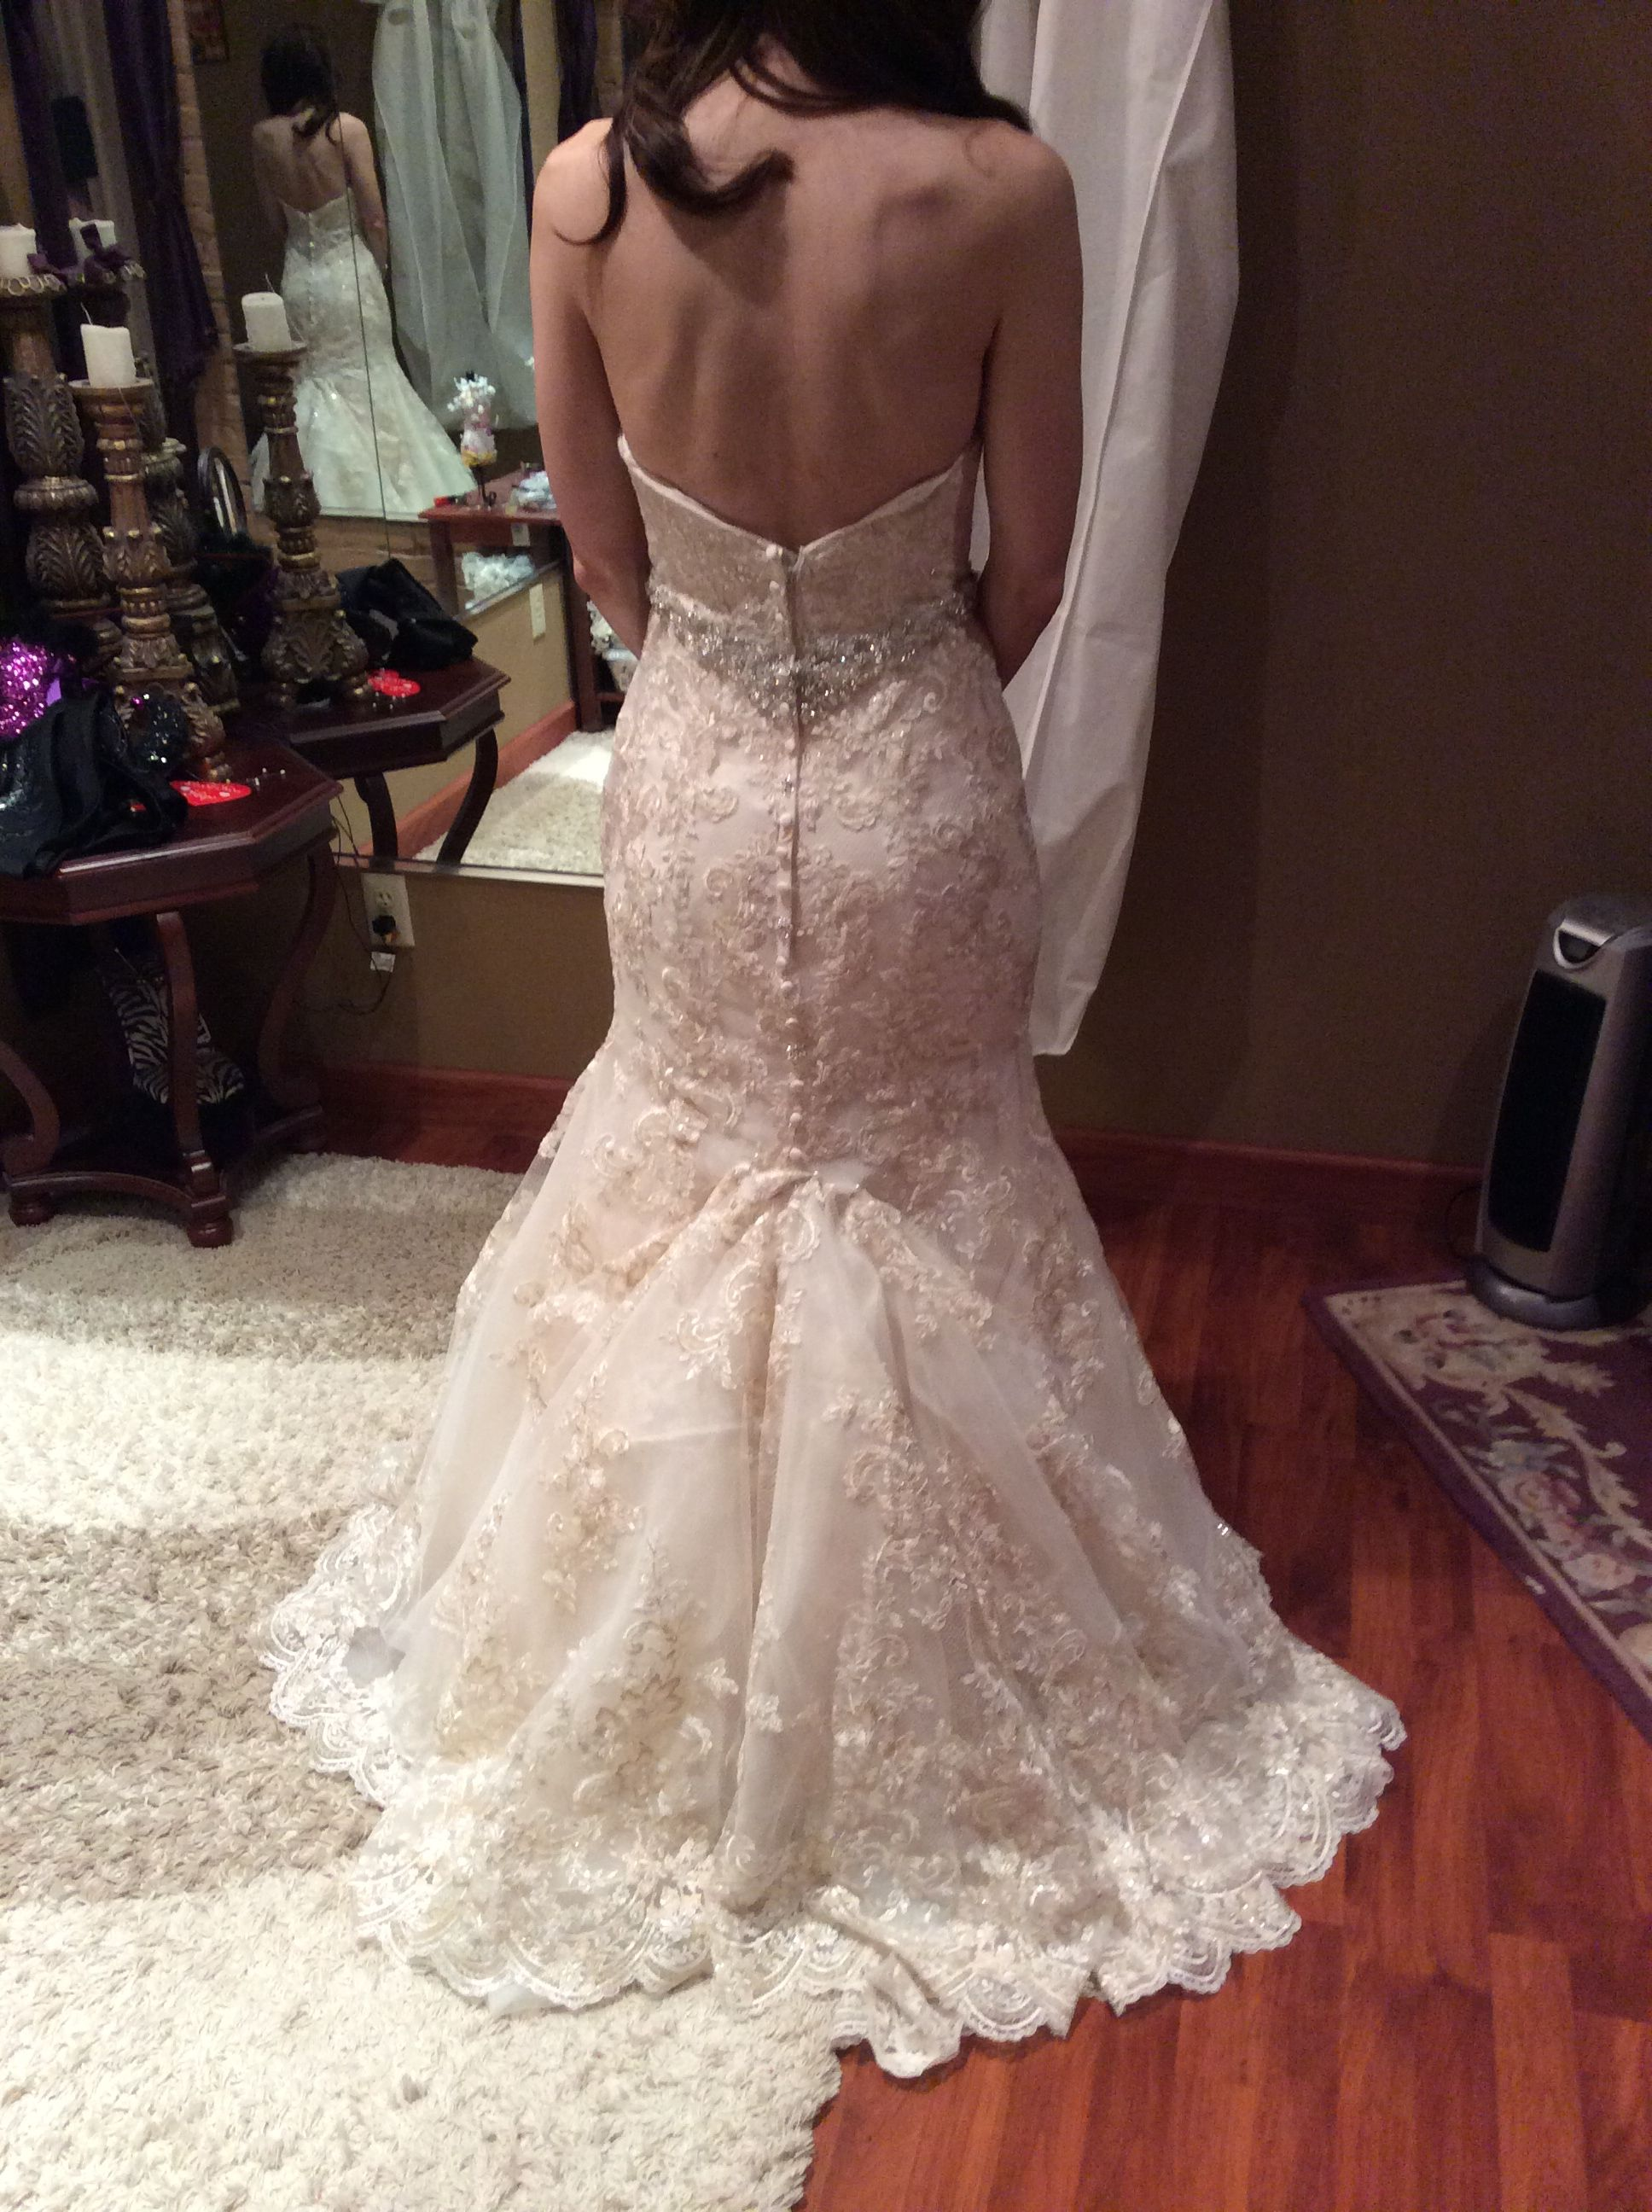 over bustle | wedding dress bustles | wedding dress bustle